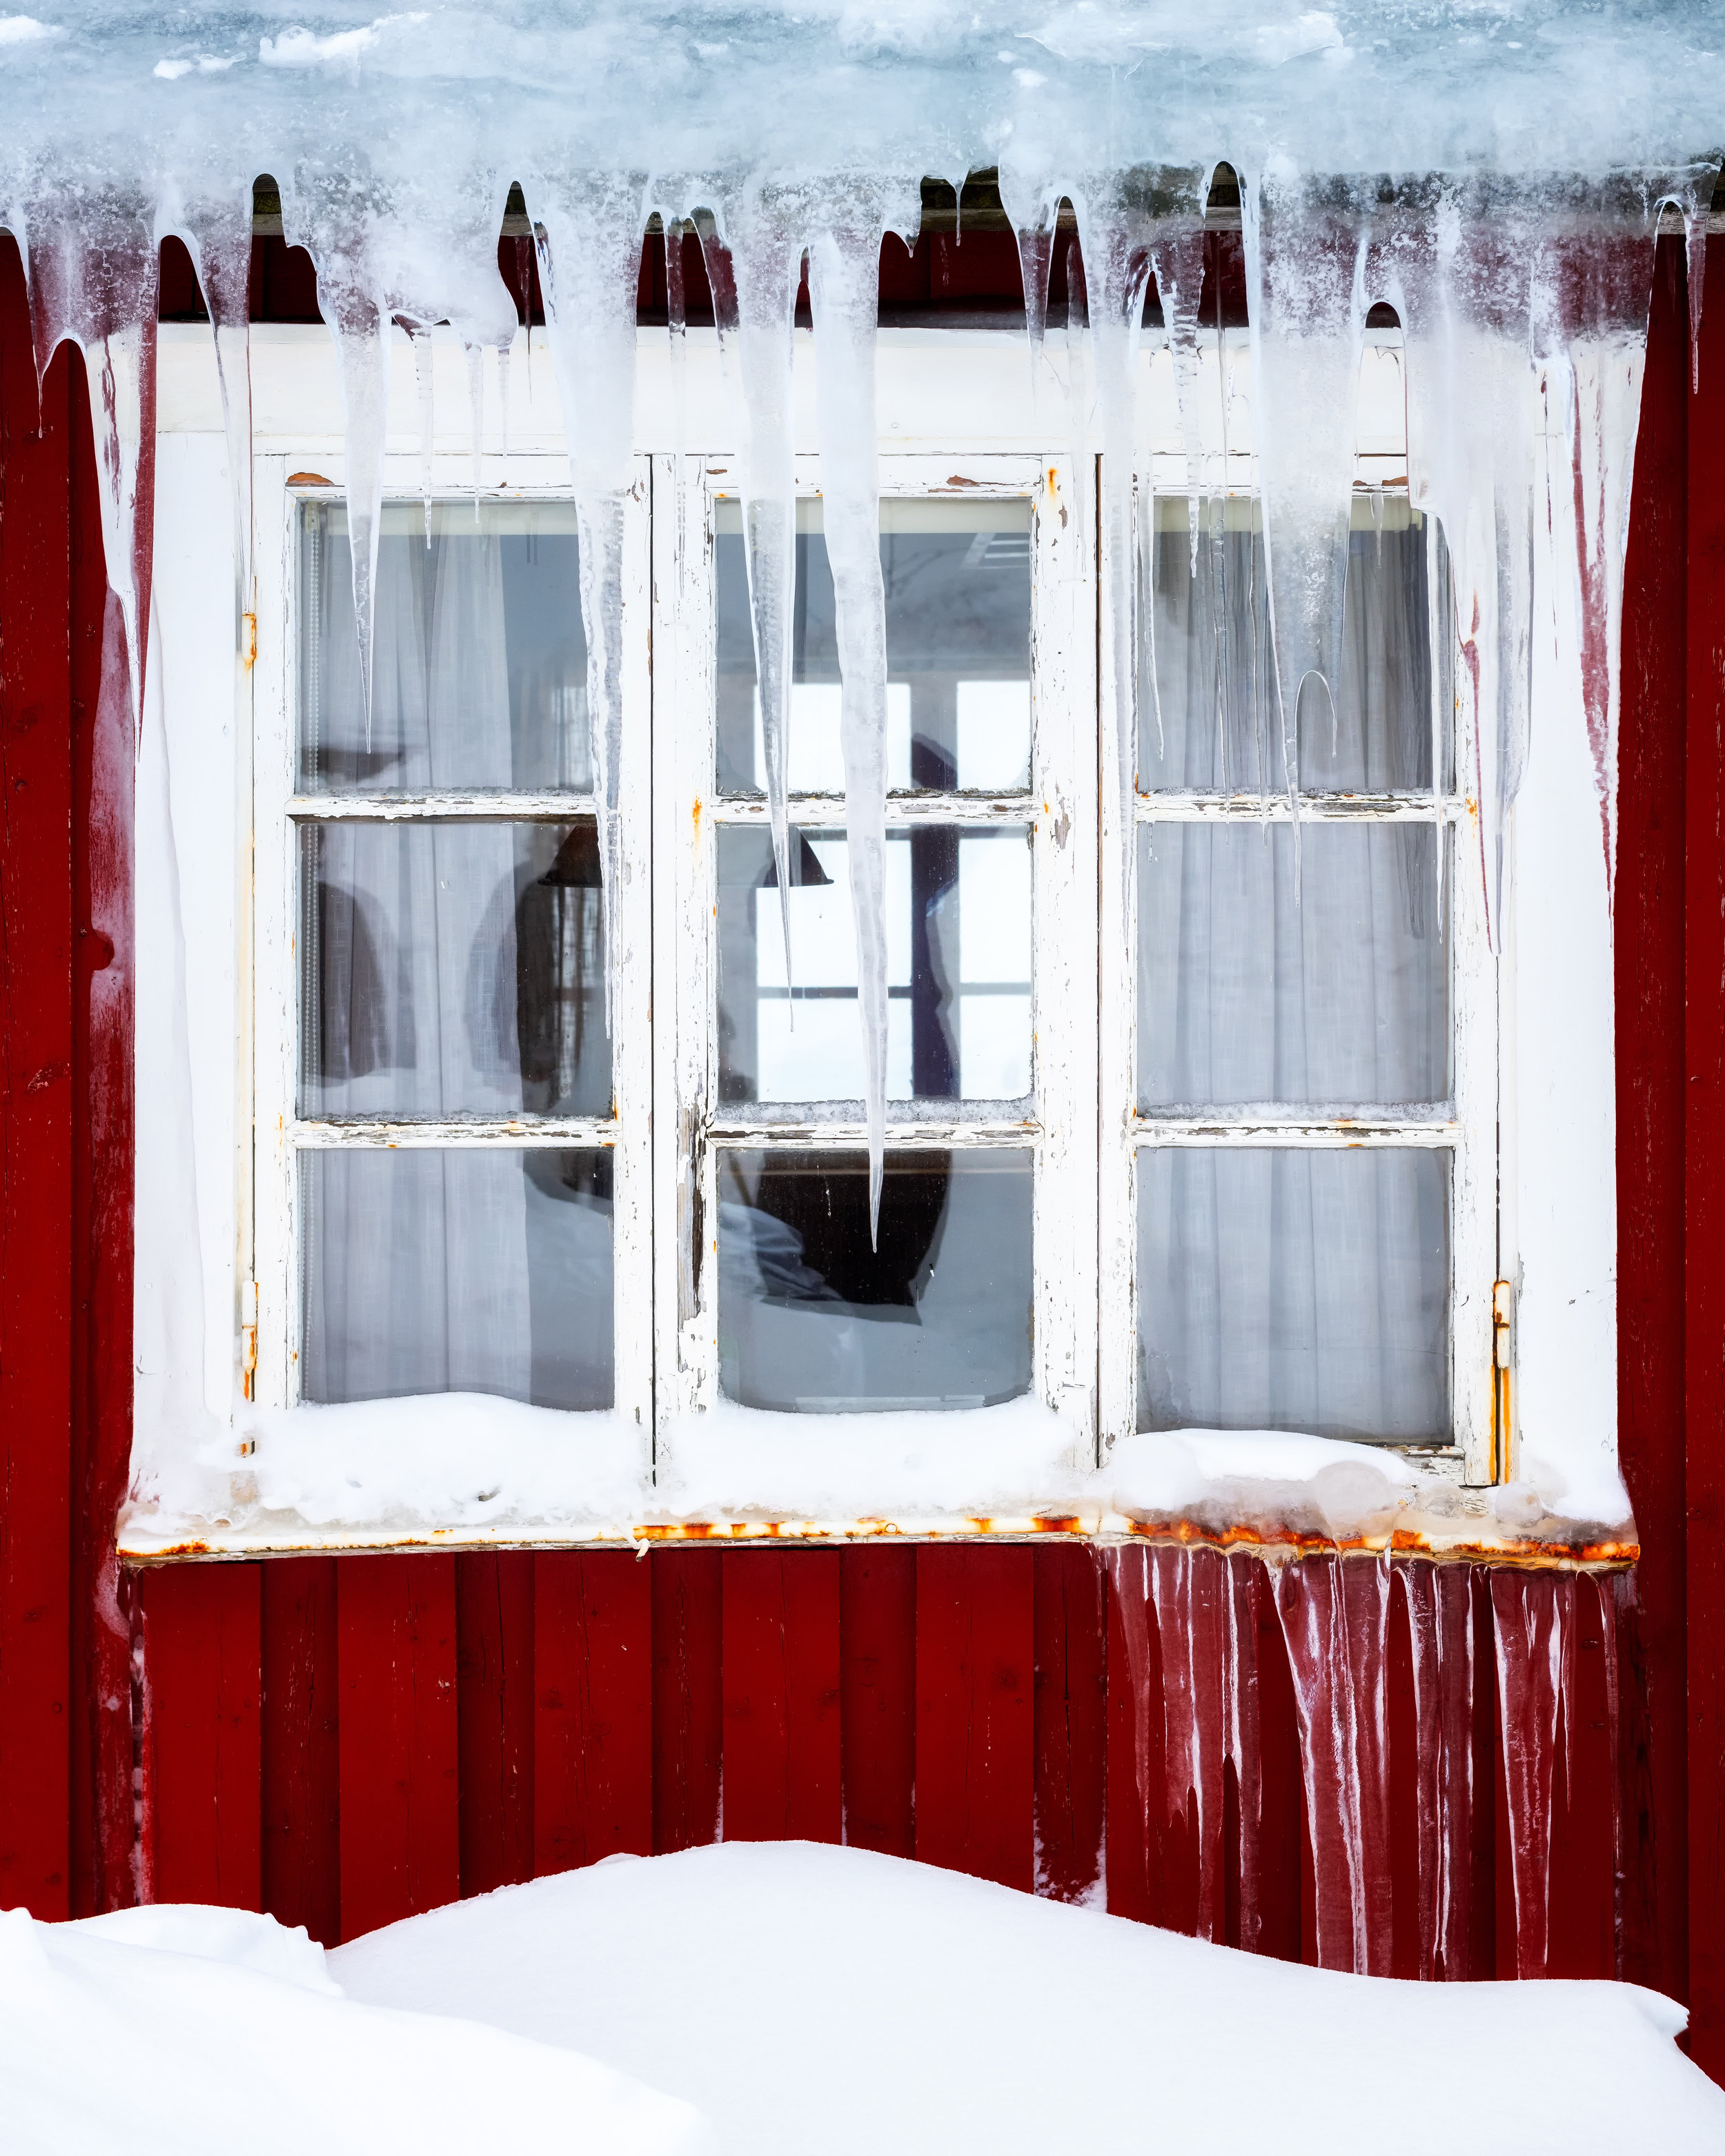 Icicles on a rorbu window, Hamnøy